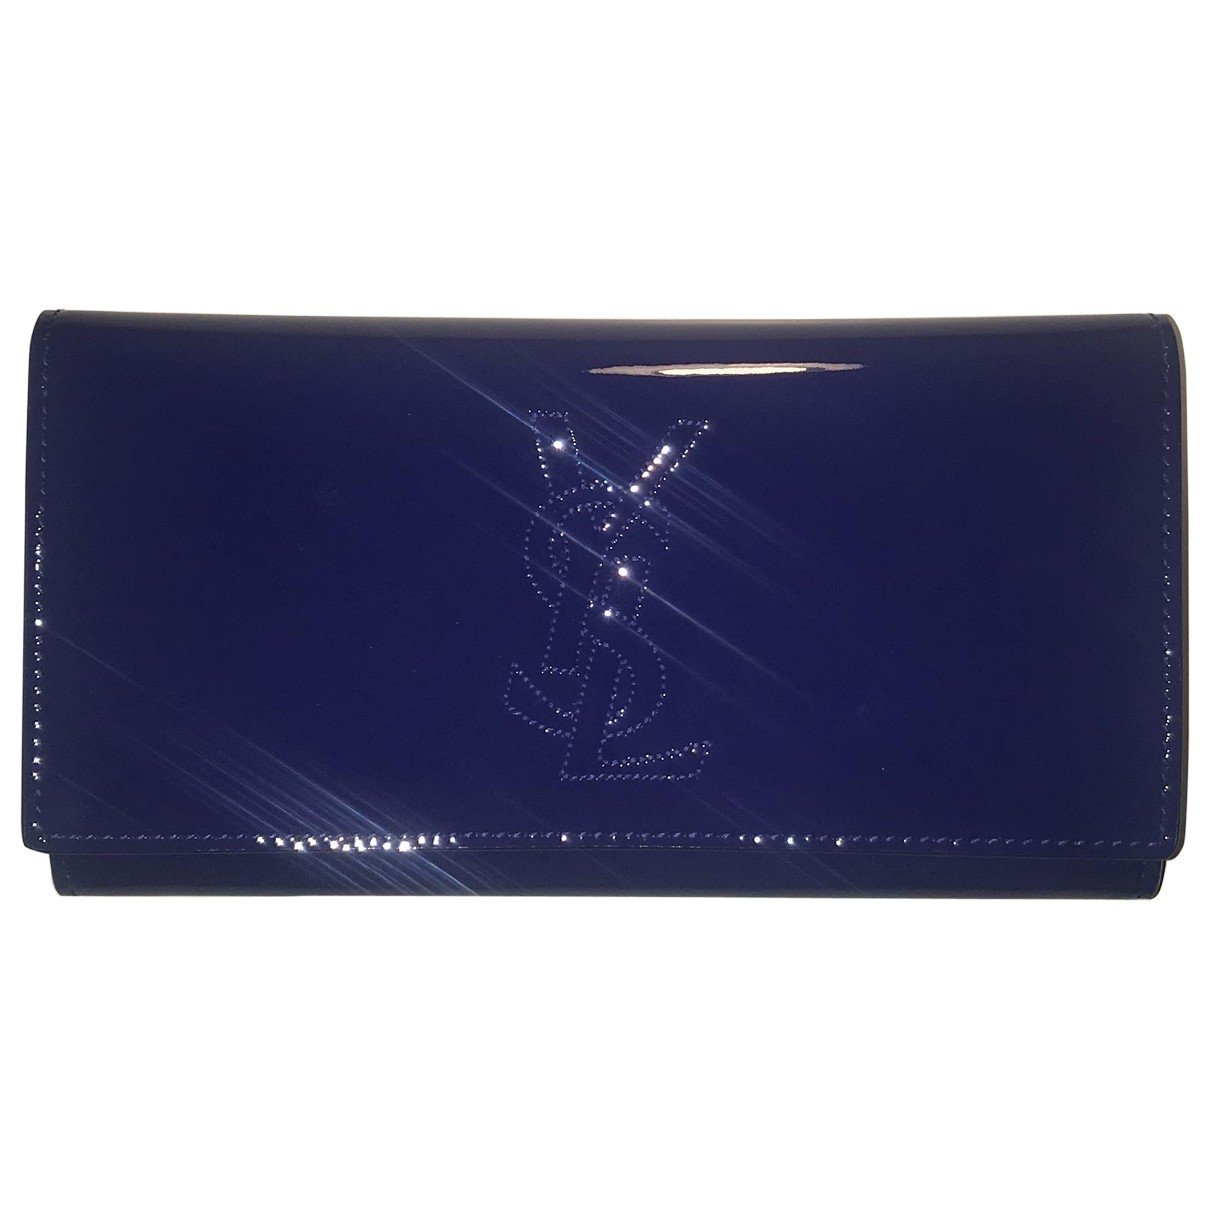 Yves Saint Laurent Belle de Jour Portemonnaie in  Blau Lackleder